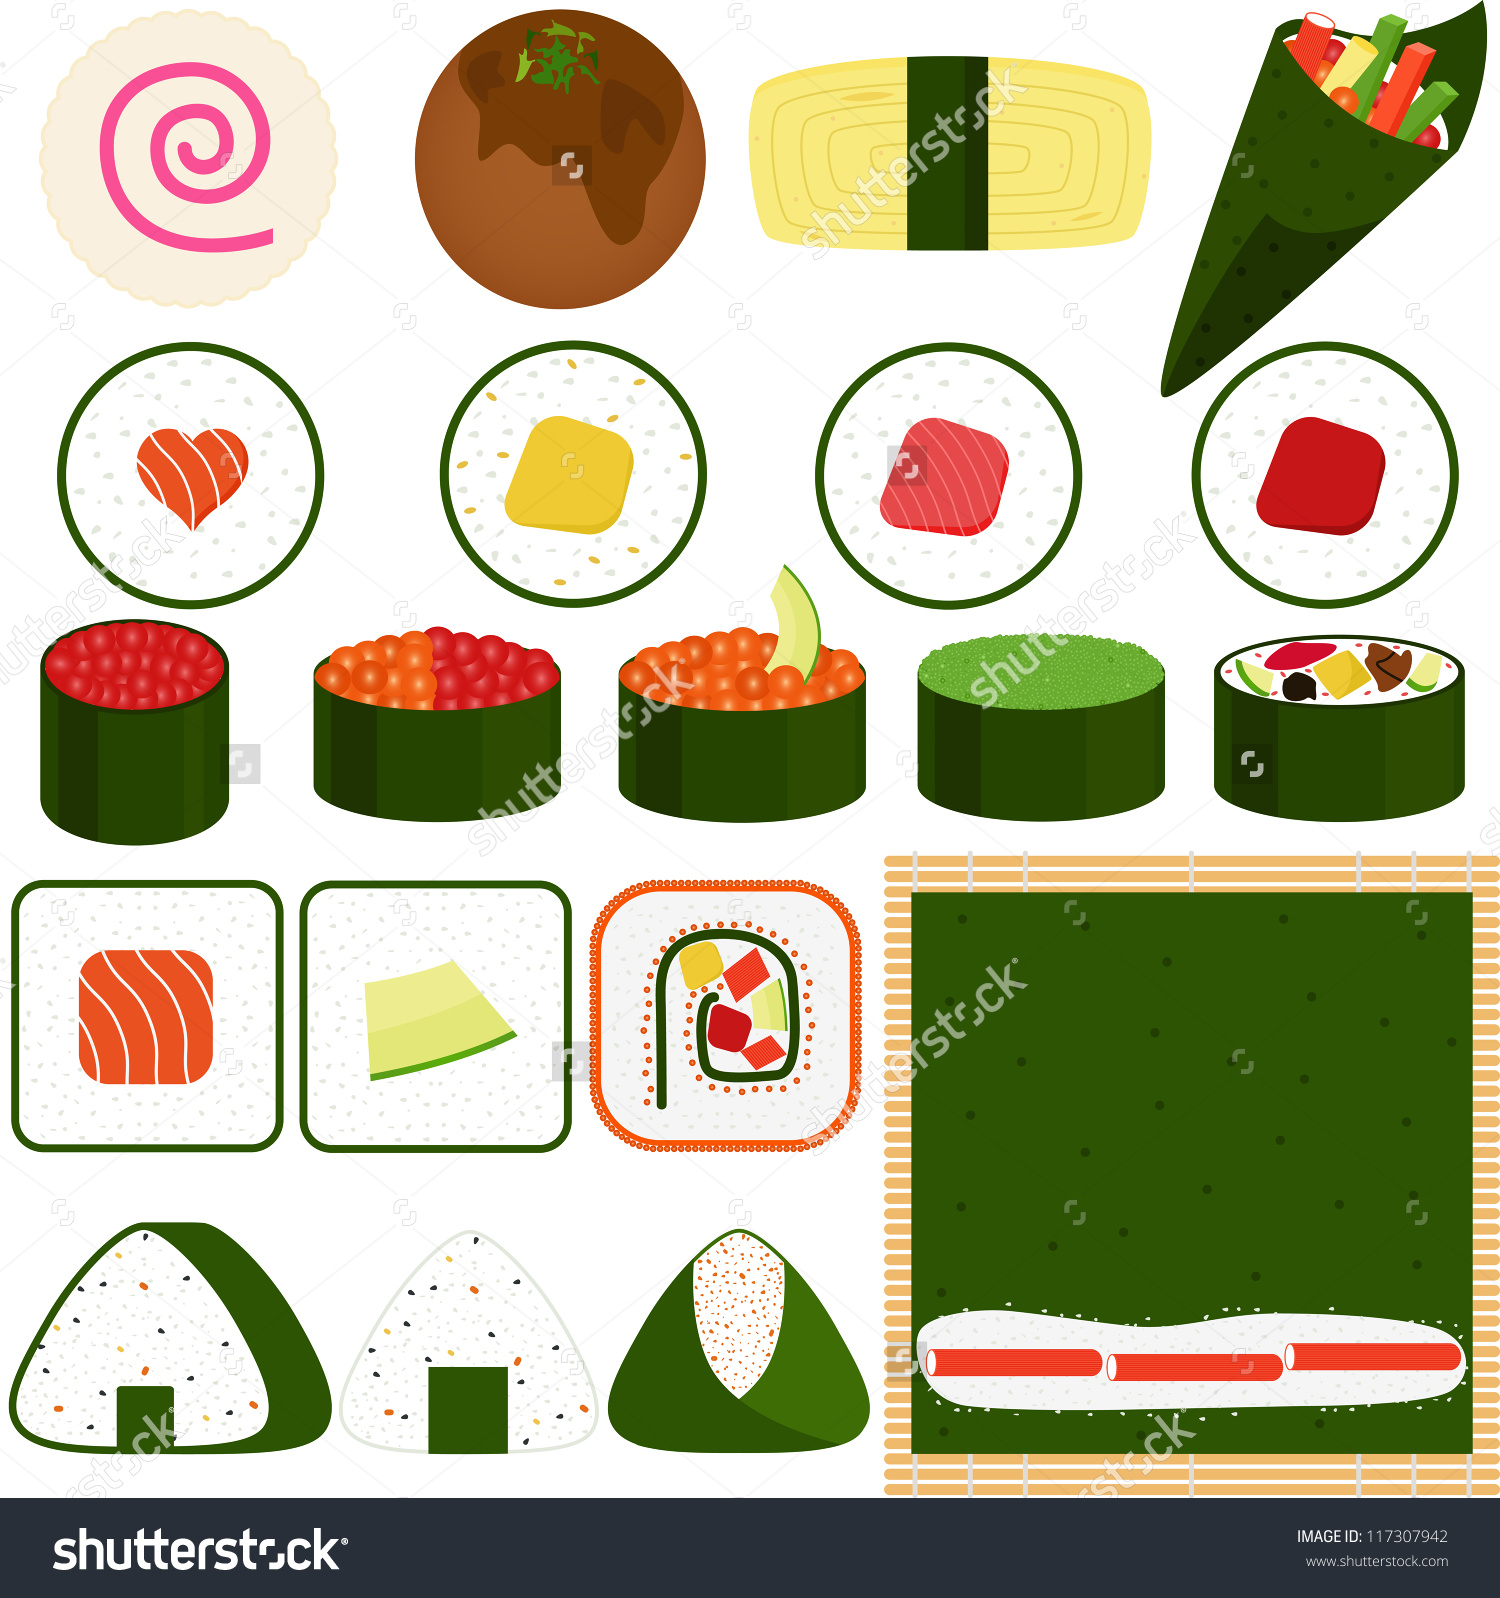 Food Vector Japanese Cuisine Maki Rolled Stock Vector 117307942.